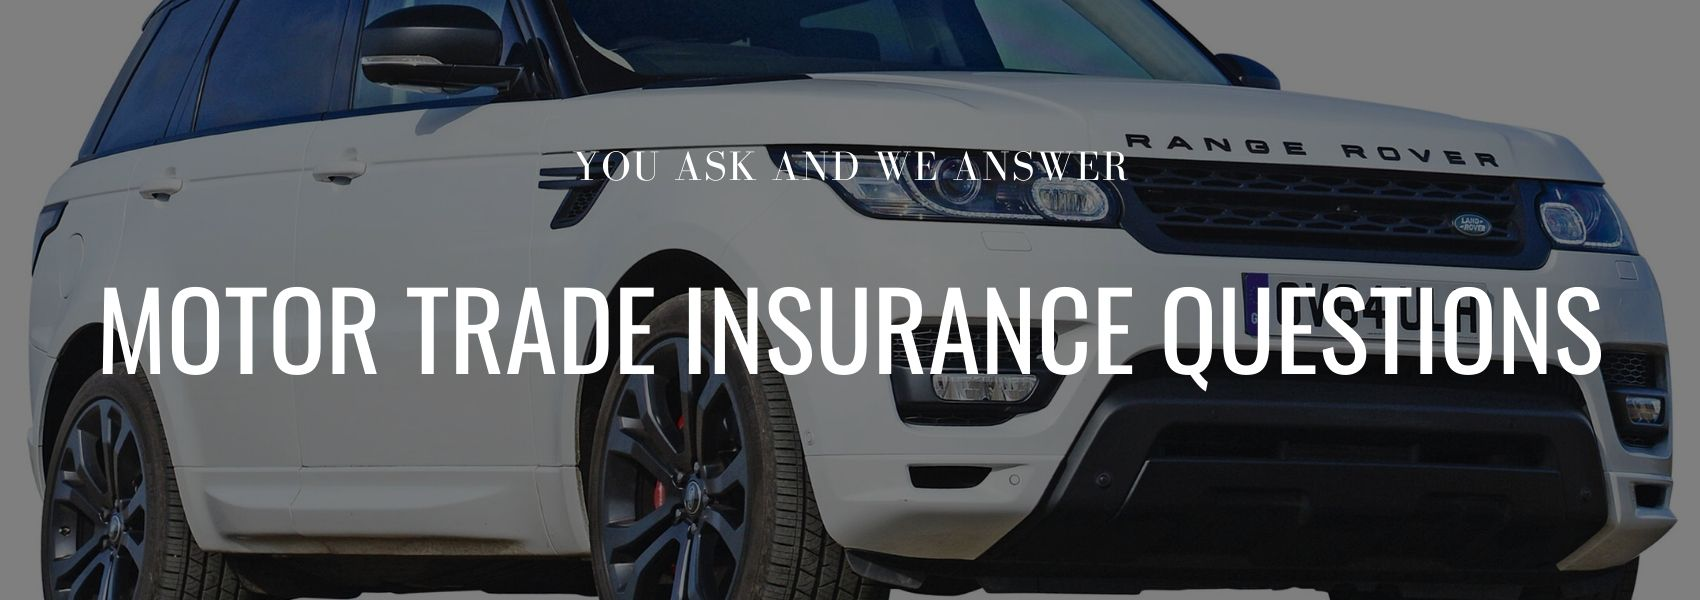 Motor trade Insurance Questions